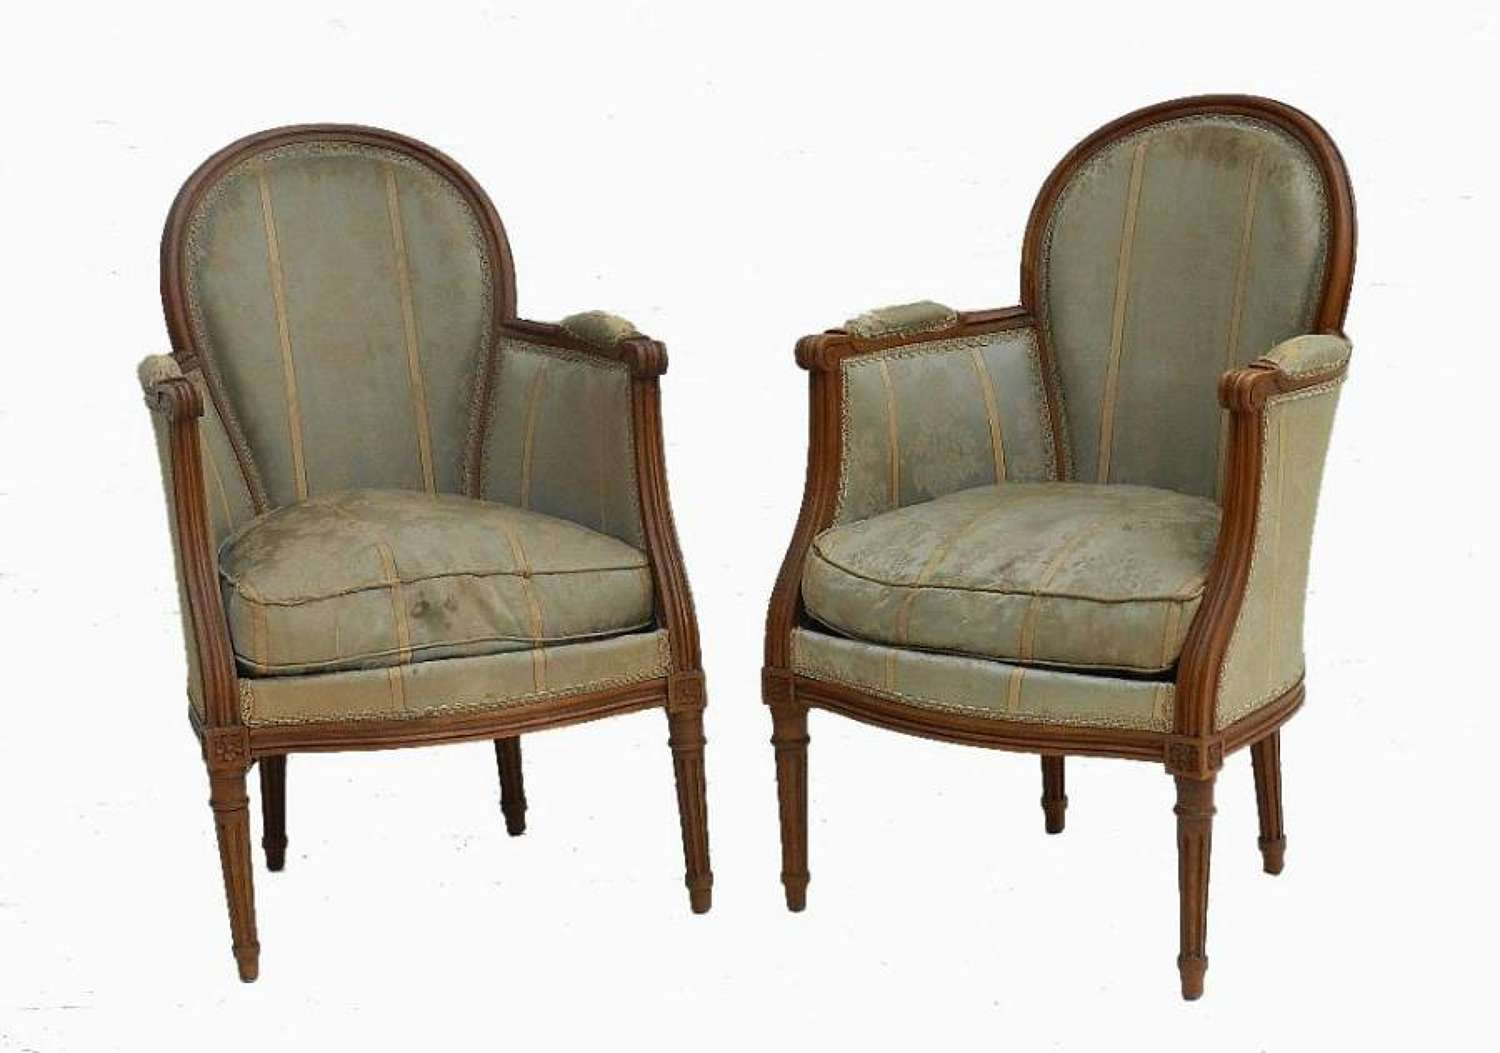 Pair of French Bergere Louis Fauteuil Armchairs to recover